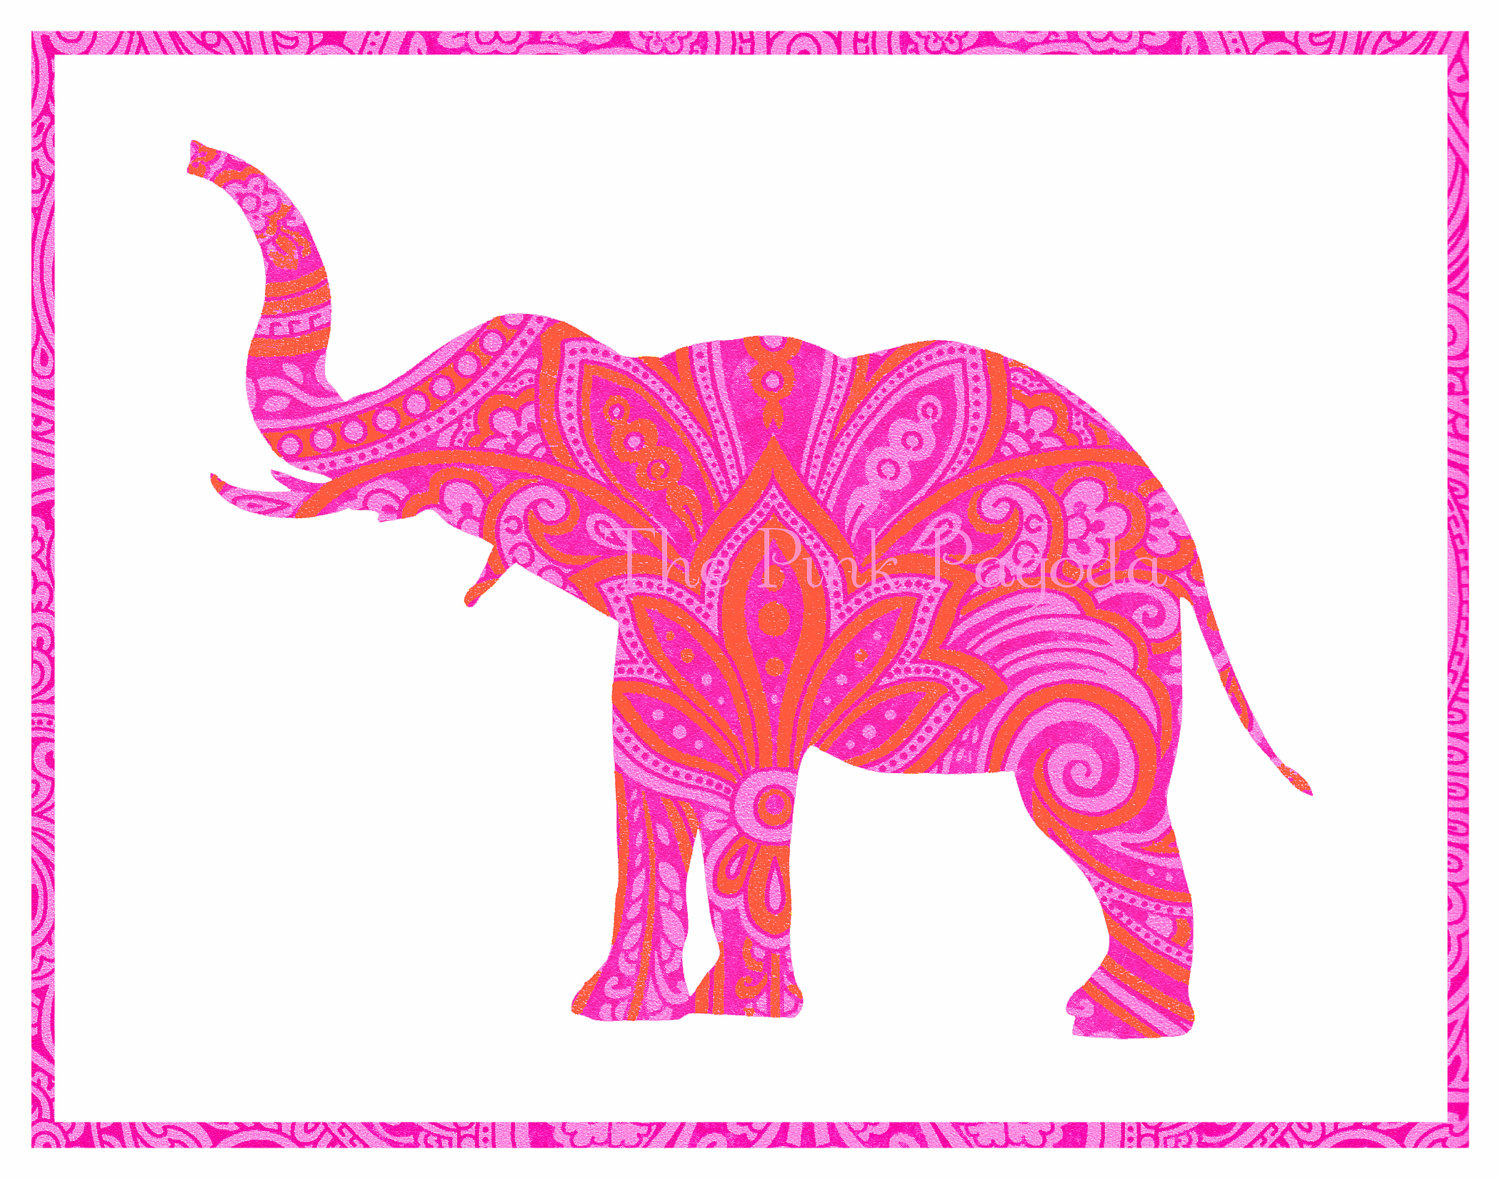 Tangerine Orange and Hot Pink Indian Paisley by thepinkpagoda 1500x1179